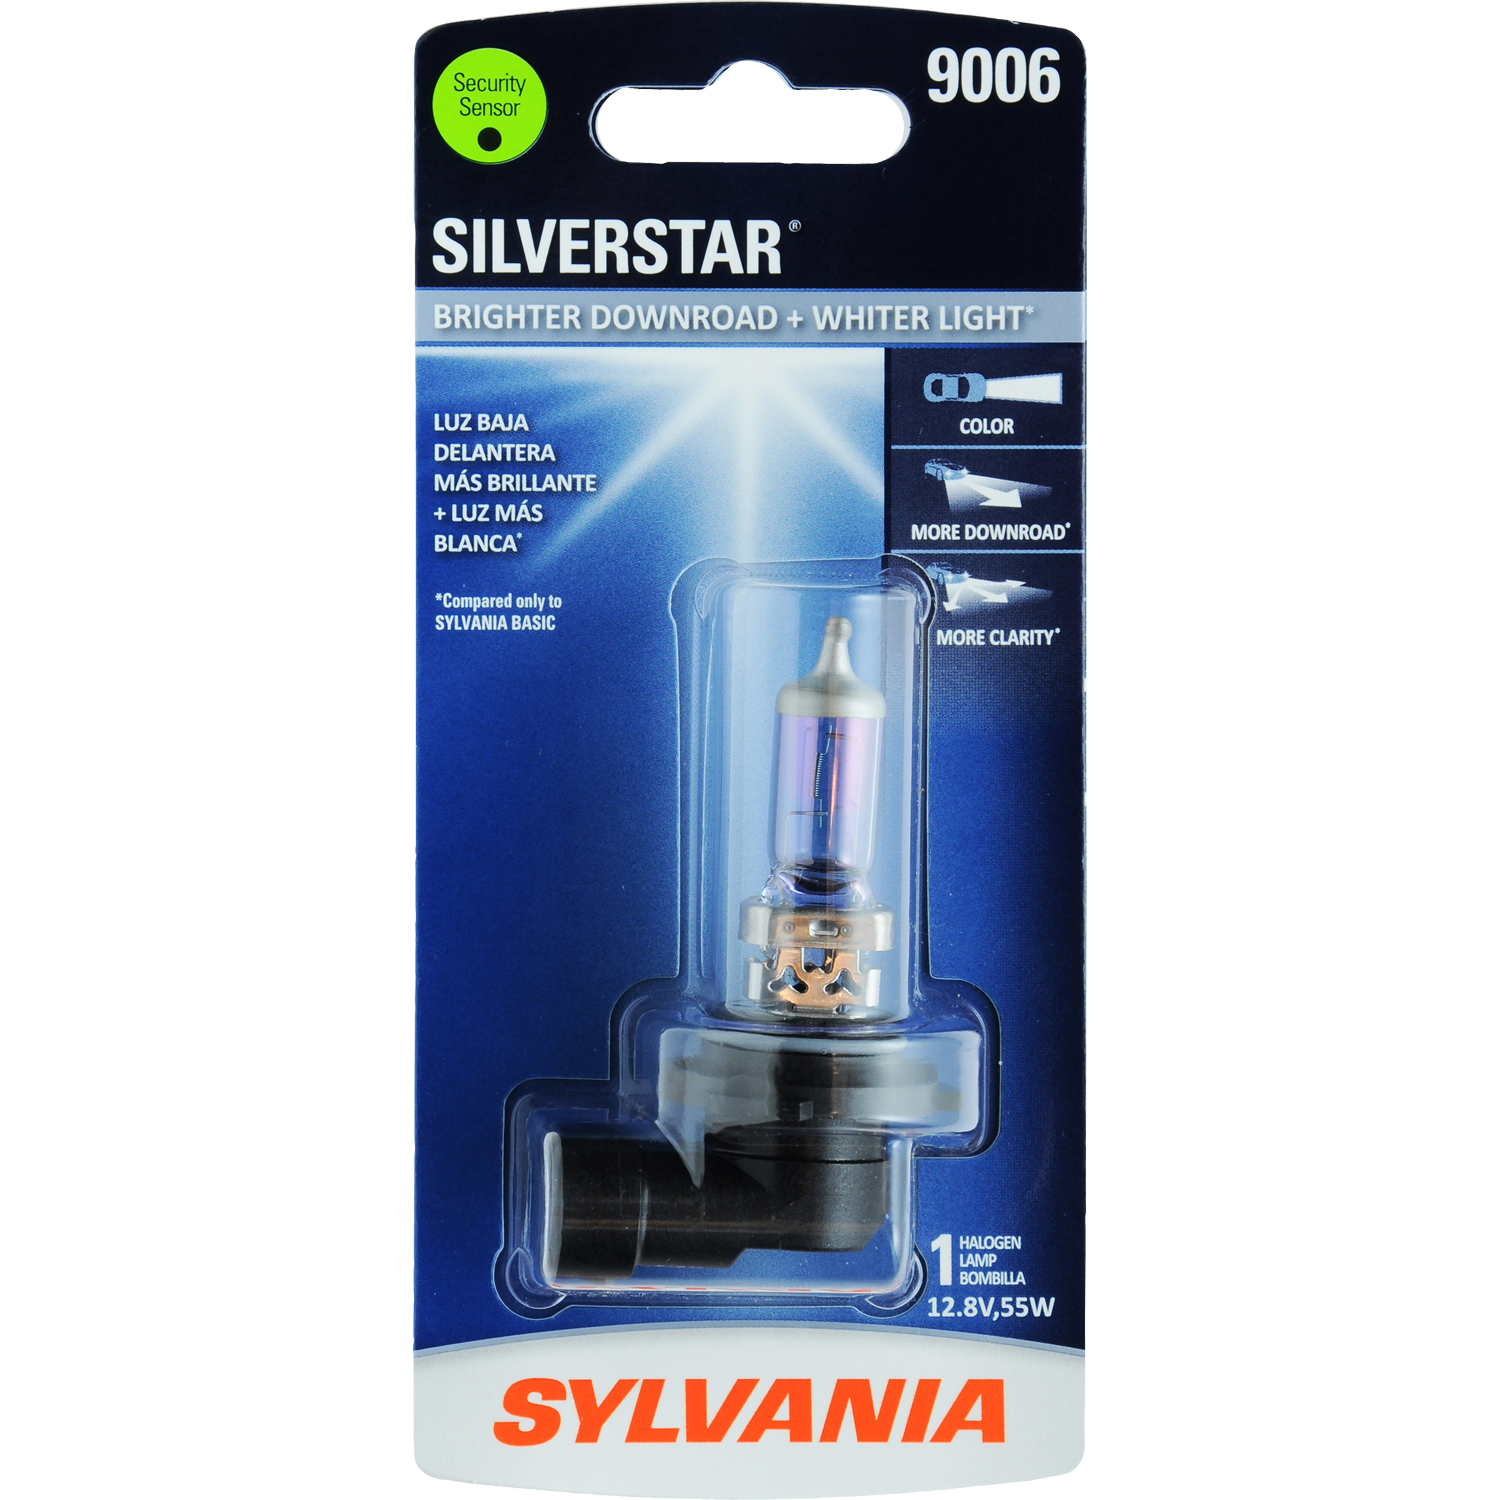 SYLVANIA 9006 SilverStar Halogen Headlight Bulb, Pack of 1